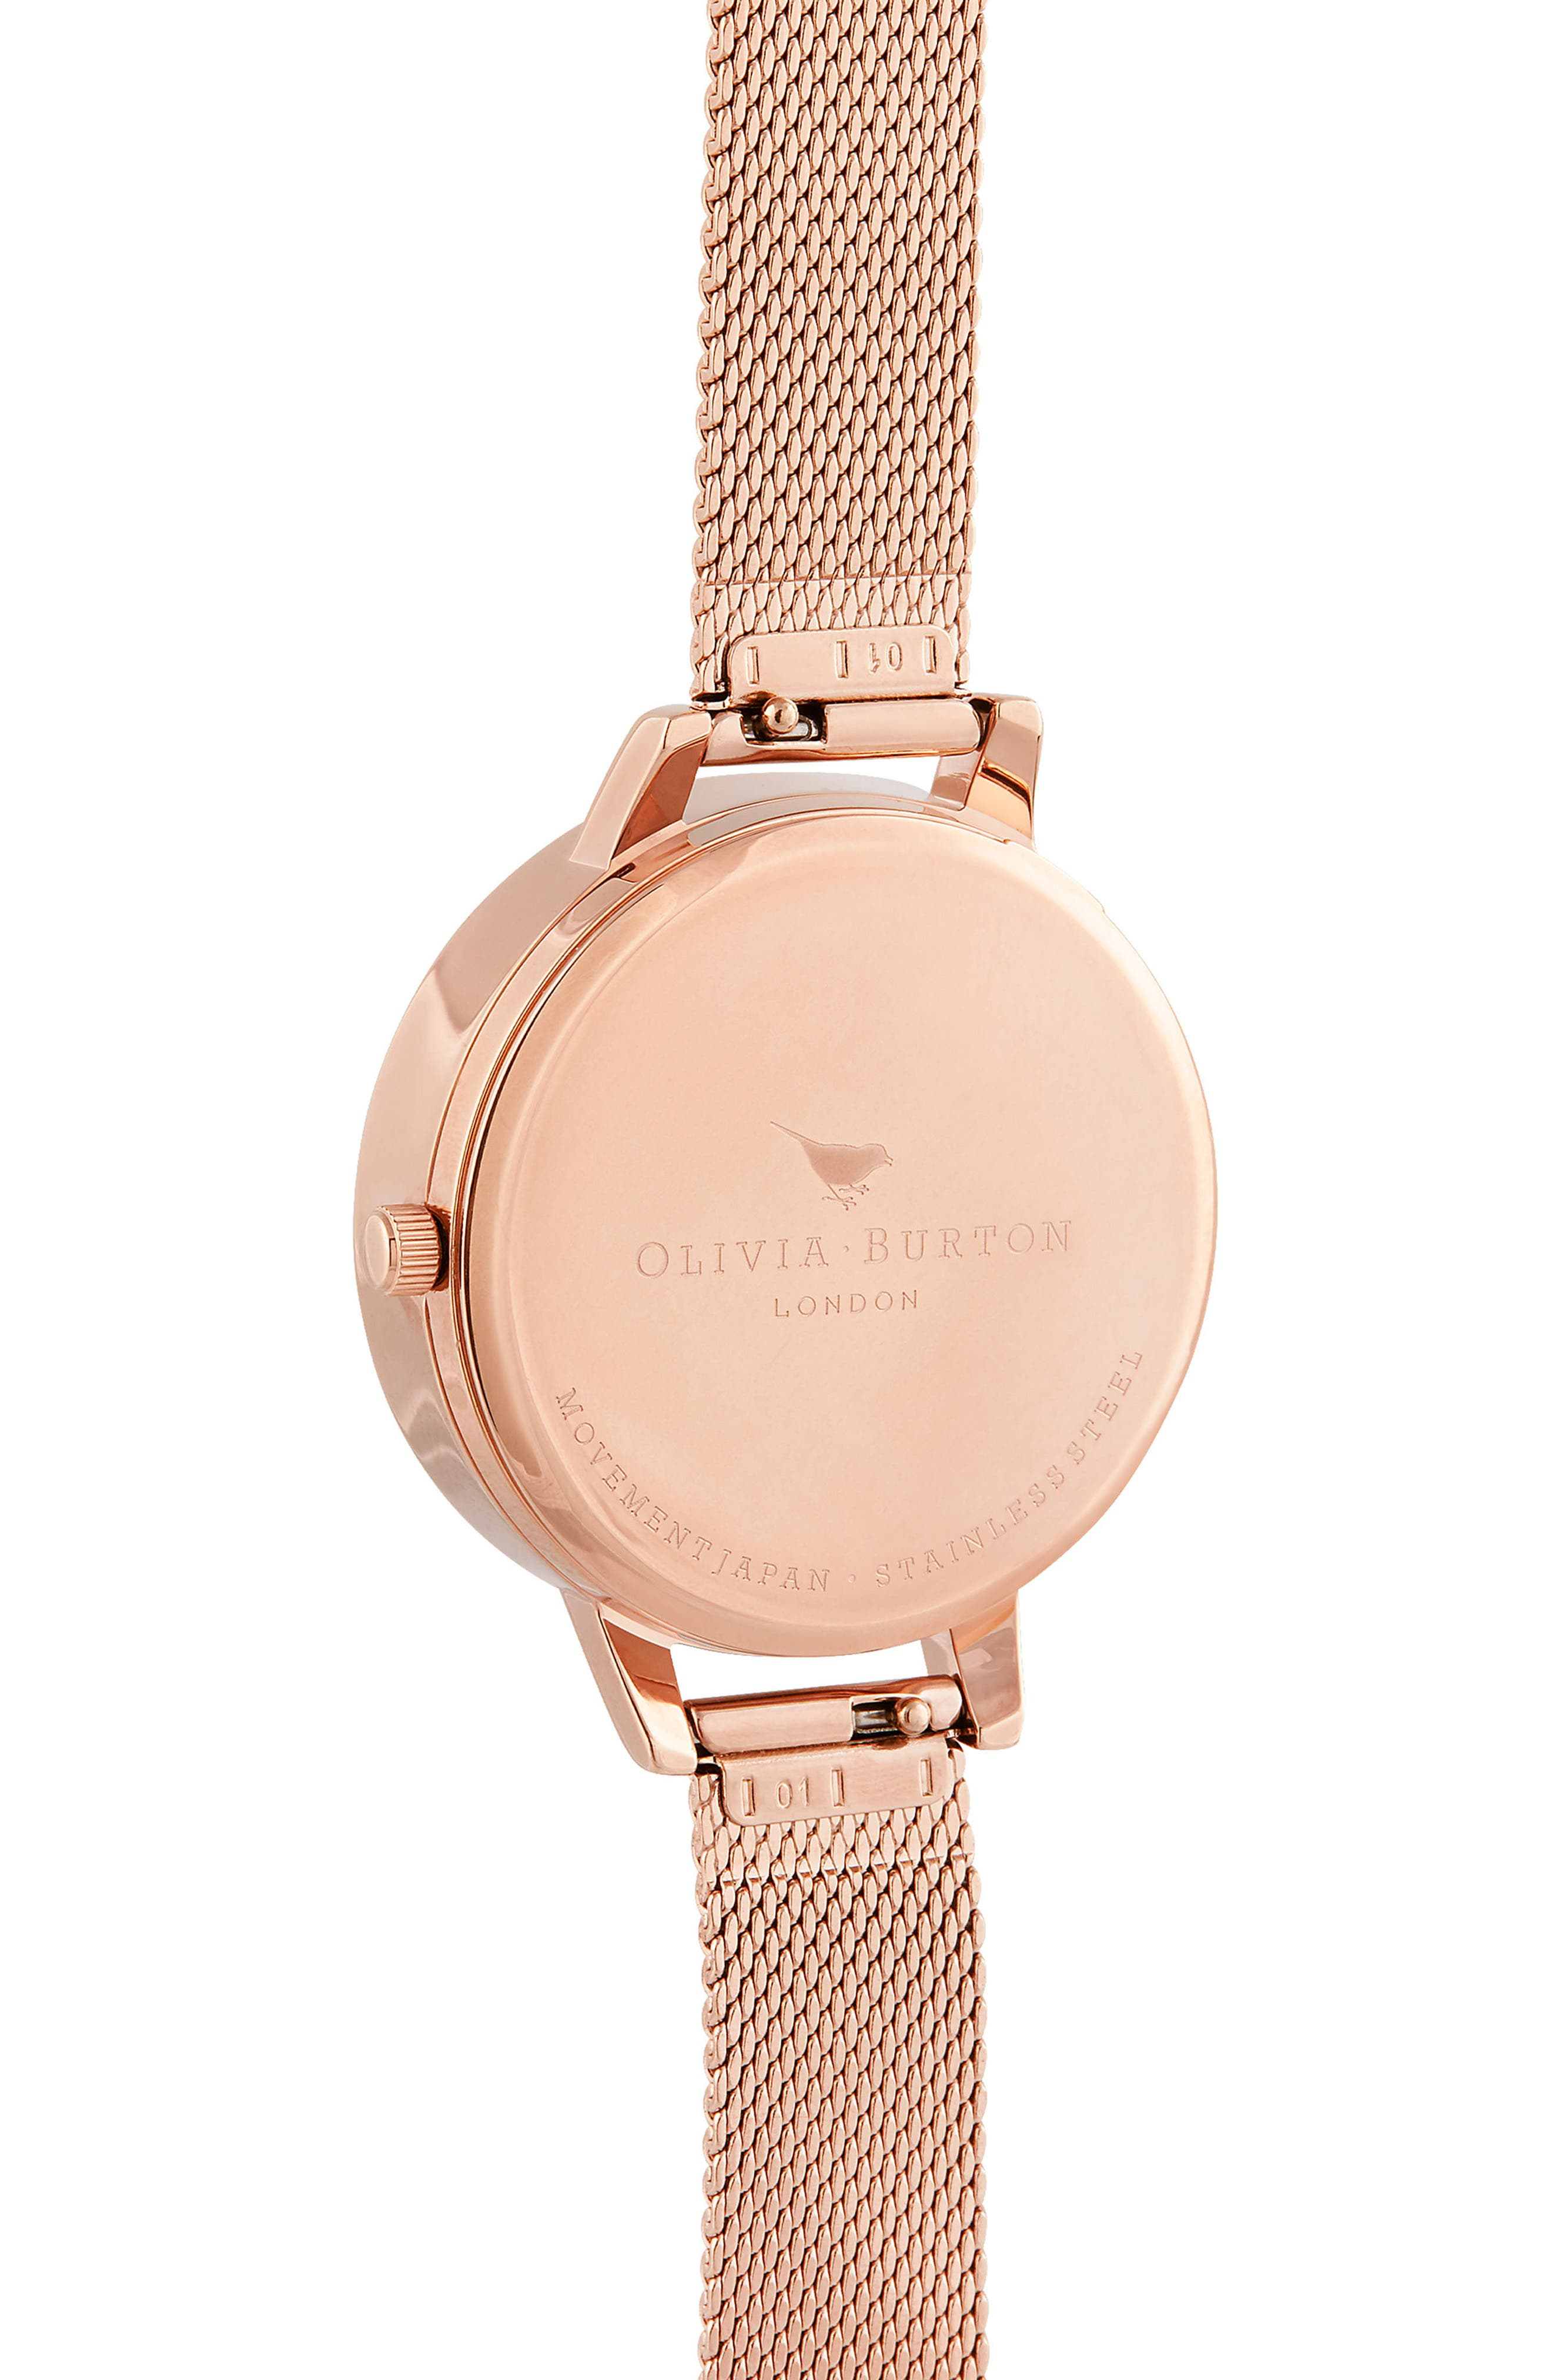 3D Bee Mesh Strap Watch, 34mm,                             Alternate thumbnail 3, color,                             ROSE GOLD/SUNRAY/ ROSE GOLD